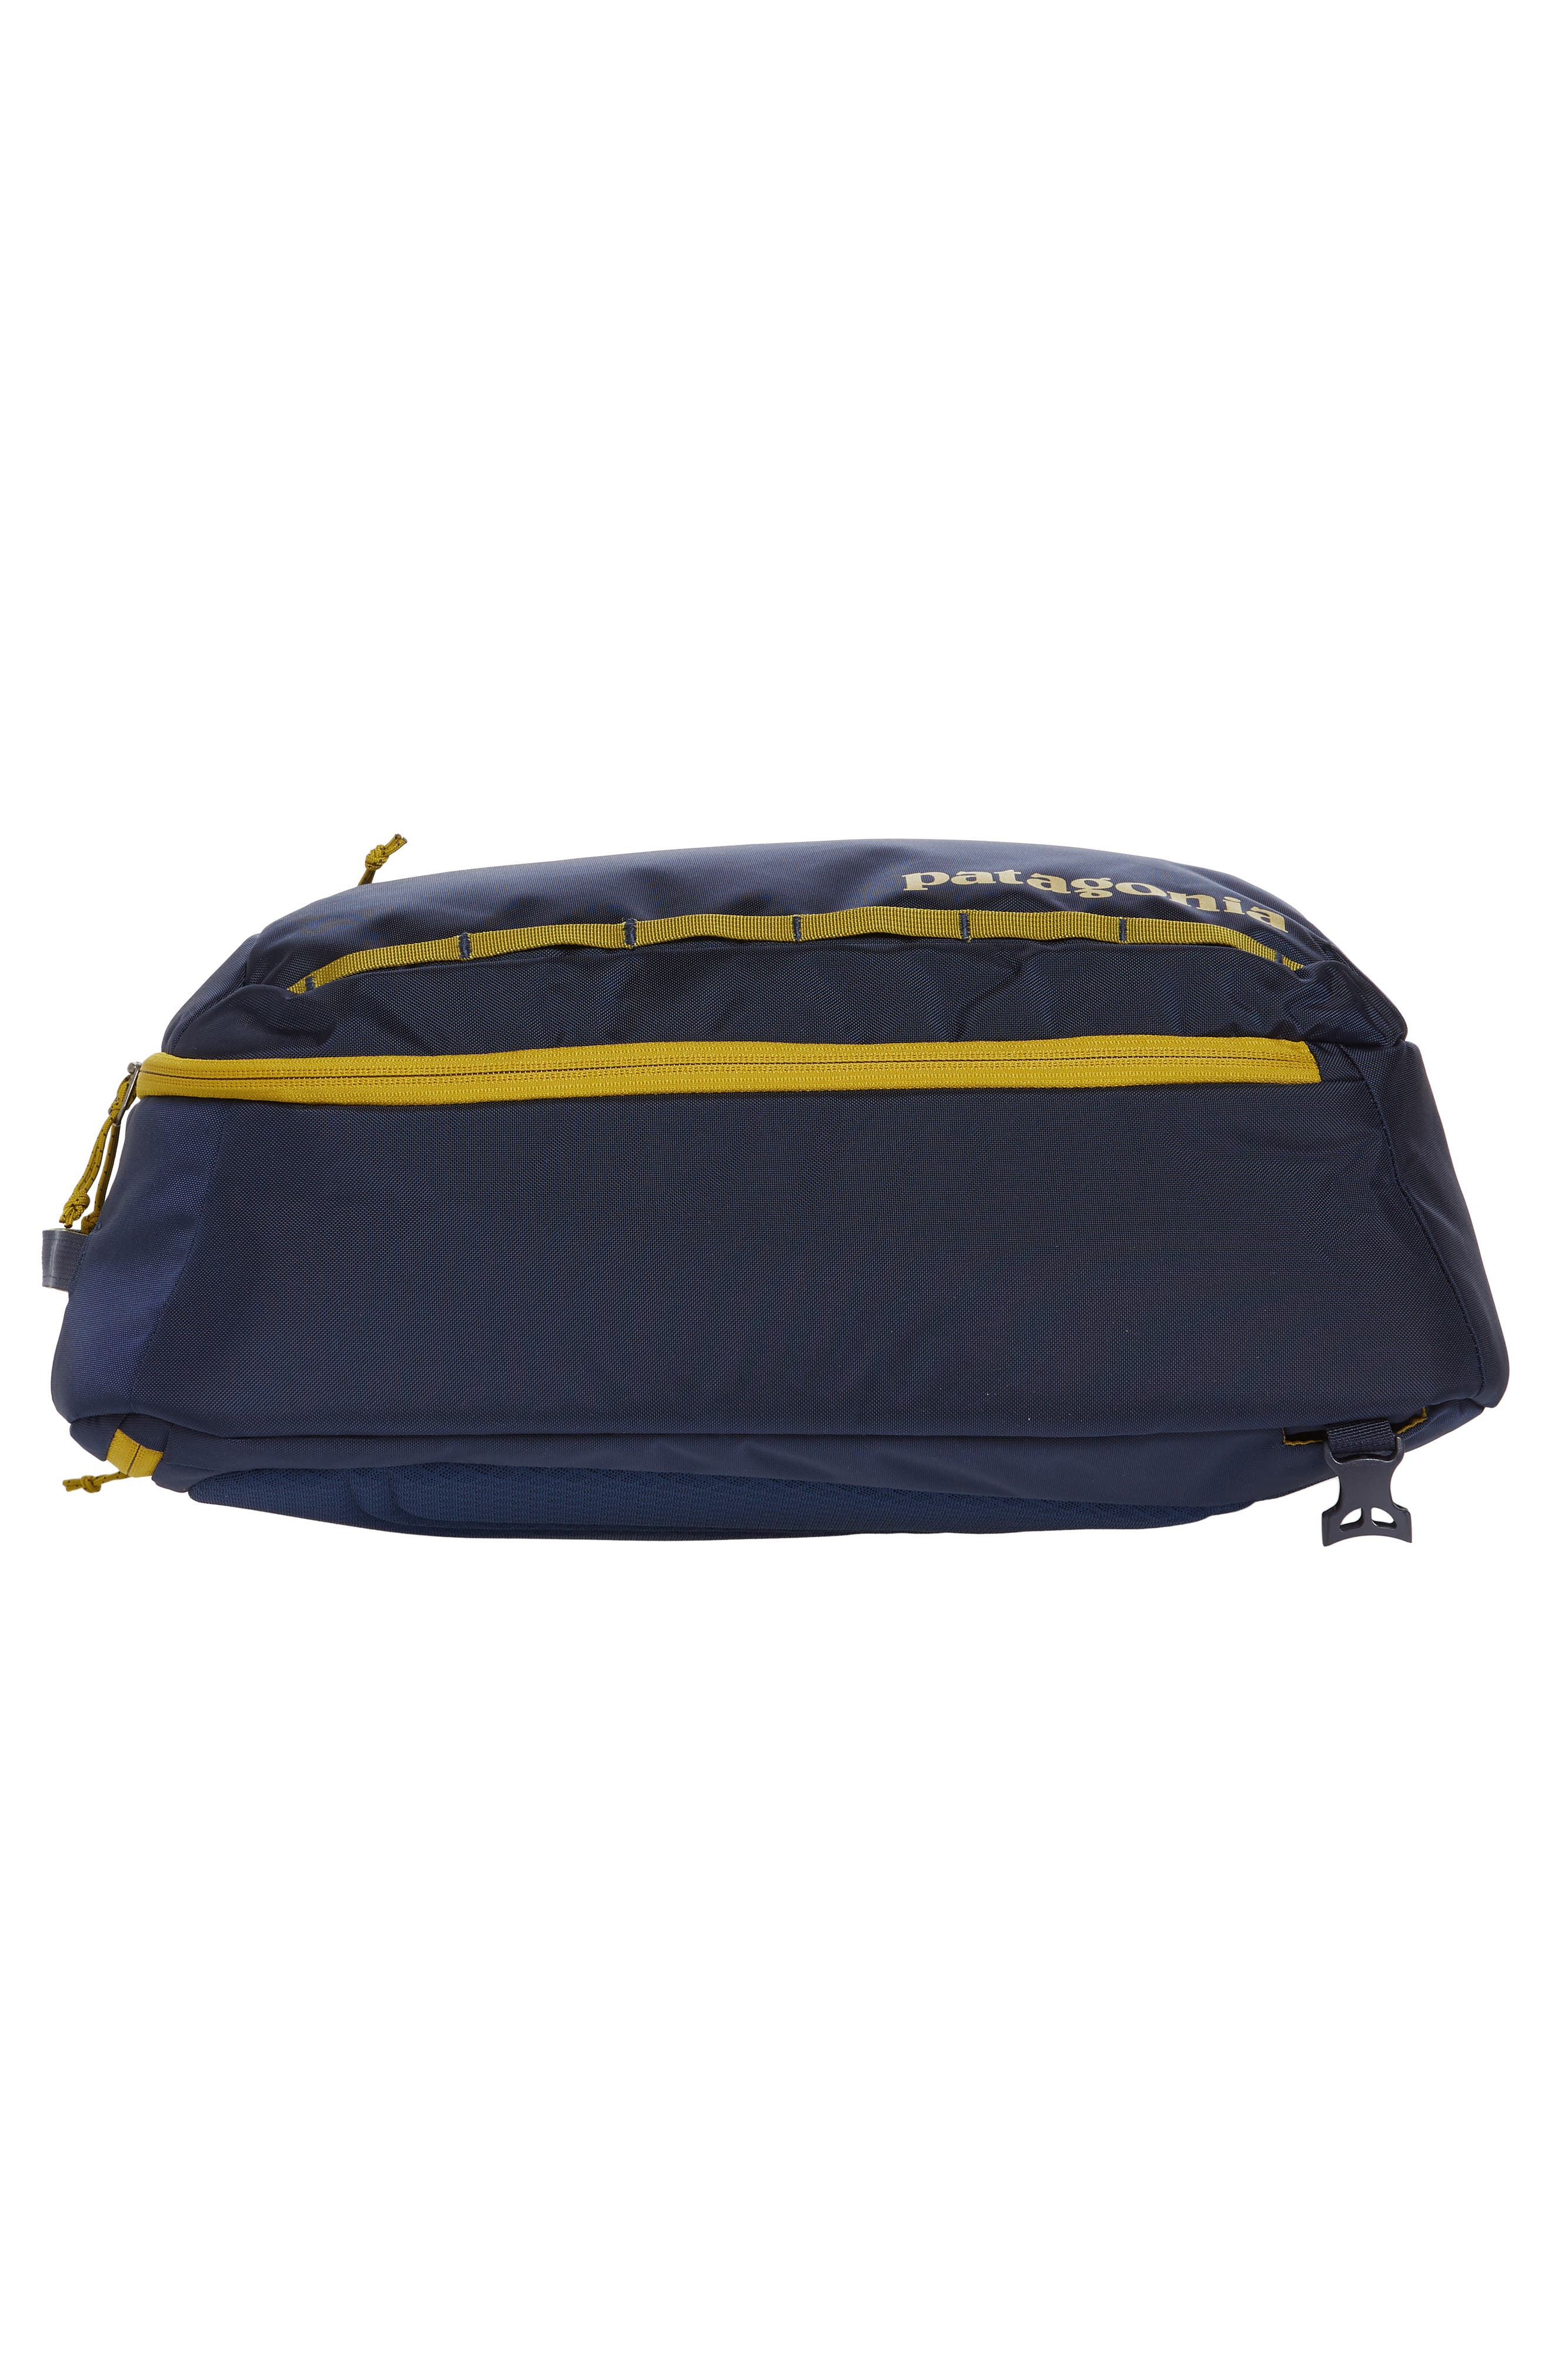 PATAGONIA,                             Tres 25-Liter Convertible Backpack,                             Alternate thumbnail 7, color,                             CLASSIC NAVY